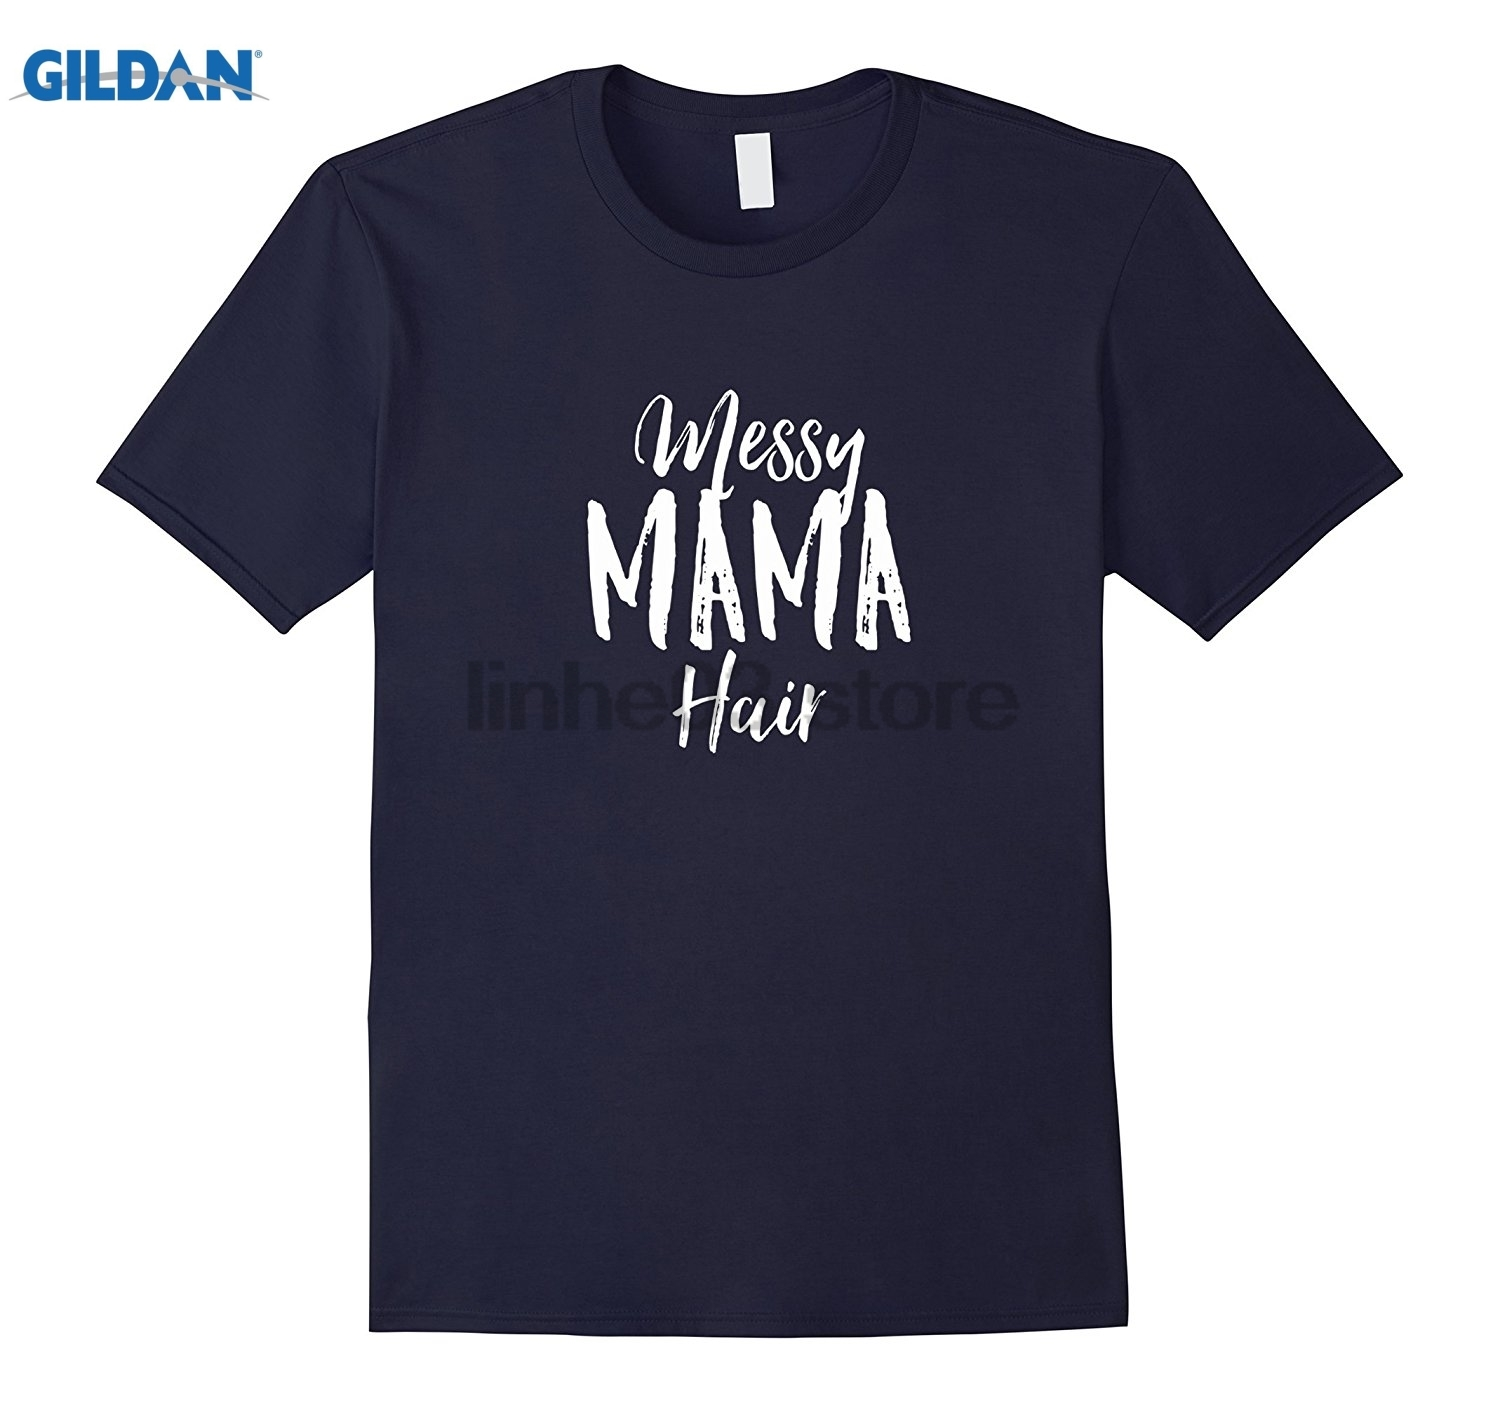 GILDAN Messy Mama Hair T-Shirt - Funny Mother Gift Hairstyle Tee summer dress T-shirt